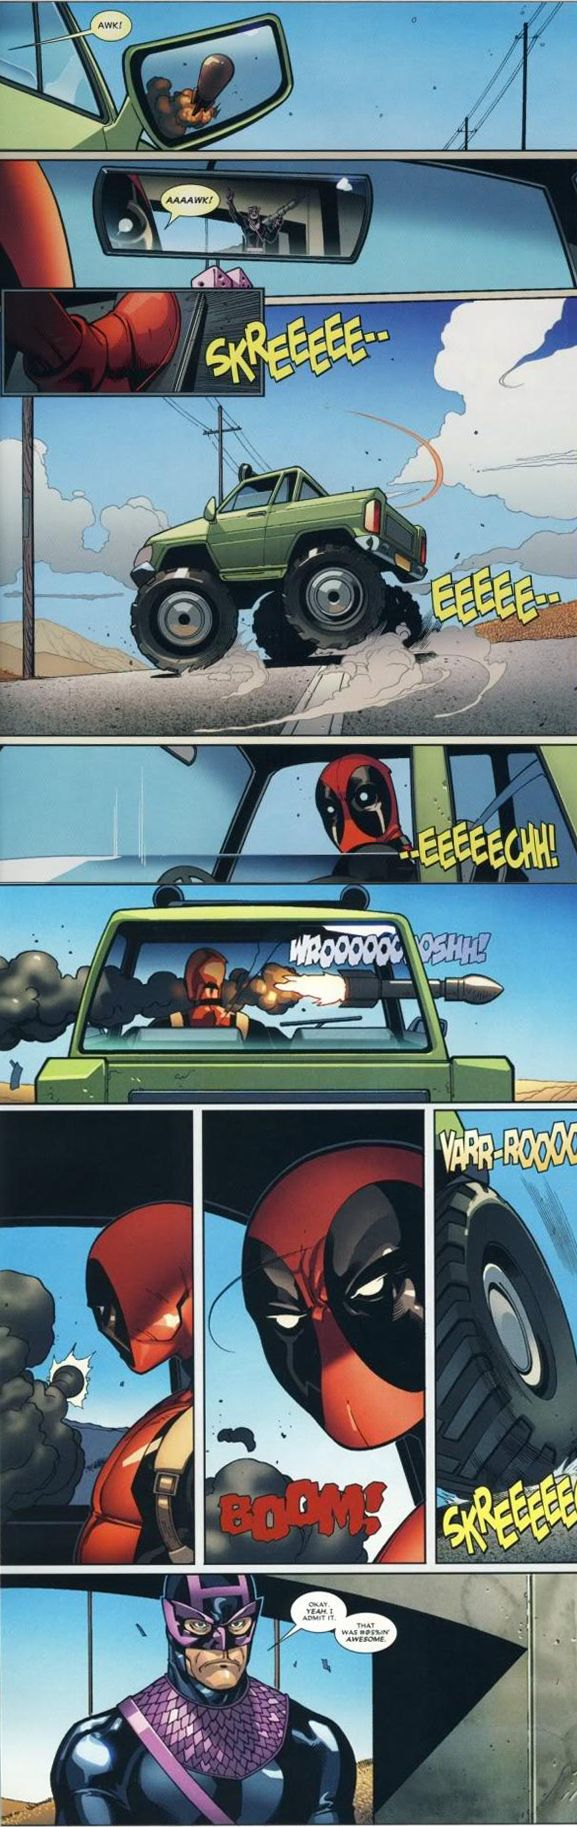 First things first, that's not actually Hawkeye. It's Bullseye. Second thing to note, Bullseye never misses his targets. So it's pretty impressive that Deadpool managed to evade one of Bullseye's missiles. Just ask Bullseye.